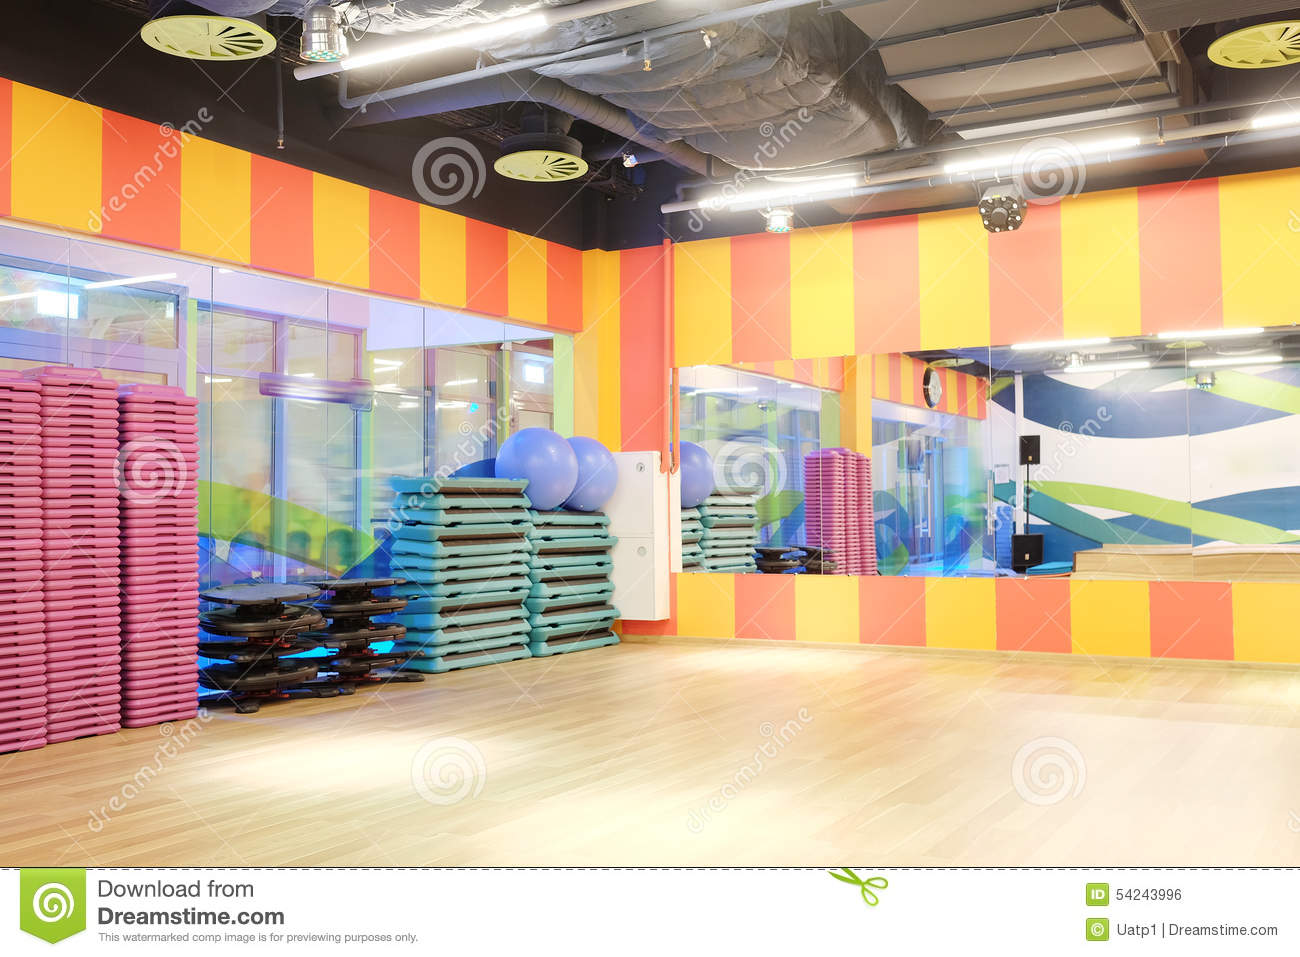 1 625 Dance Studio Interior Photos Free Royalty Free Stock Photos From Dreamstime